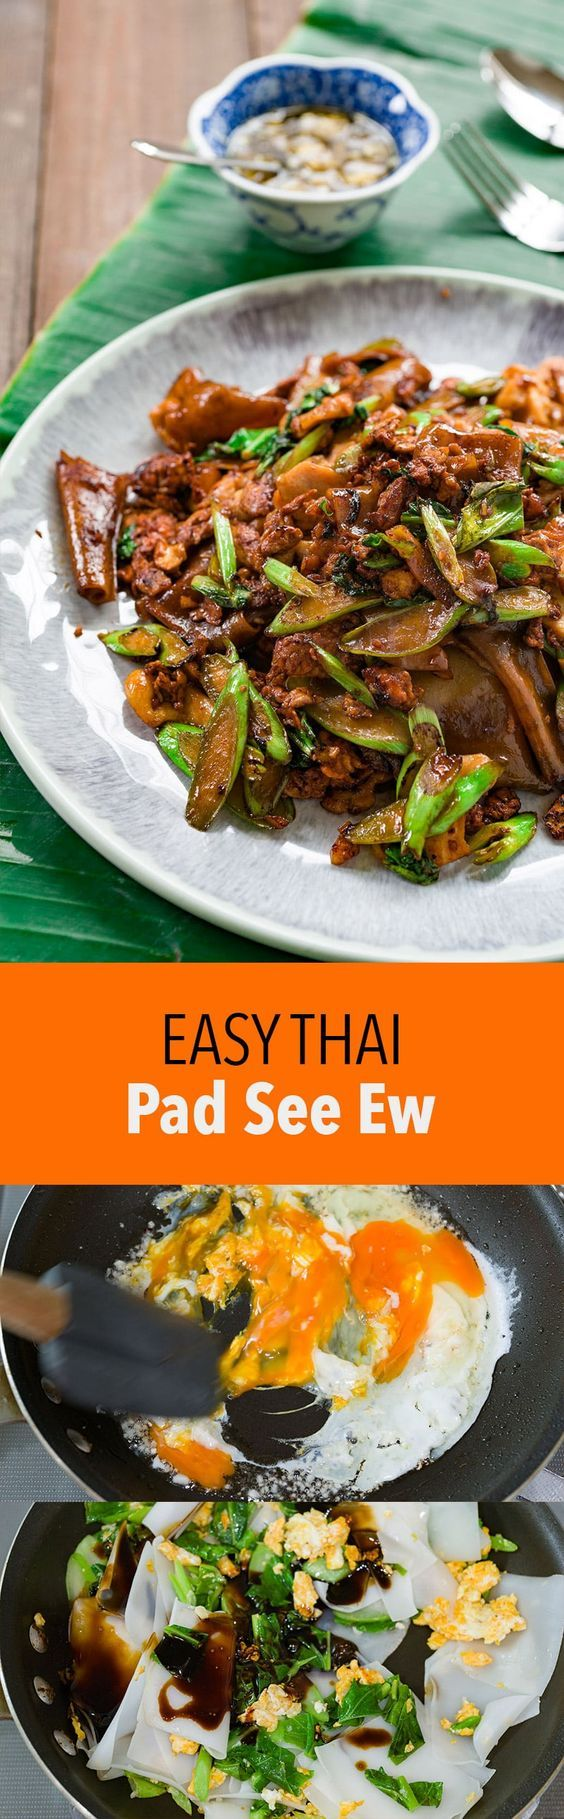 Pad See Ew (ผัดซีอิ๊ว) is a delightful stir-fry with broad rice noodles, chicken, egg and greens seasoned with sweet soy sauce.